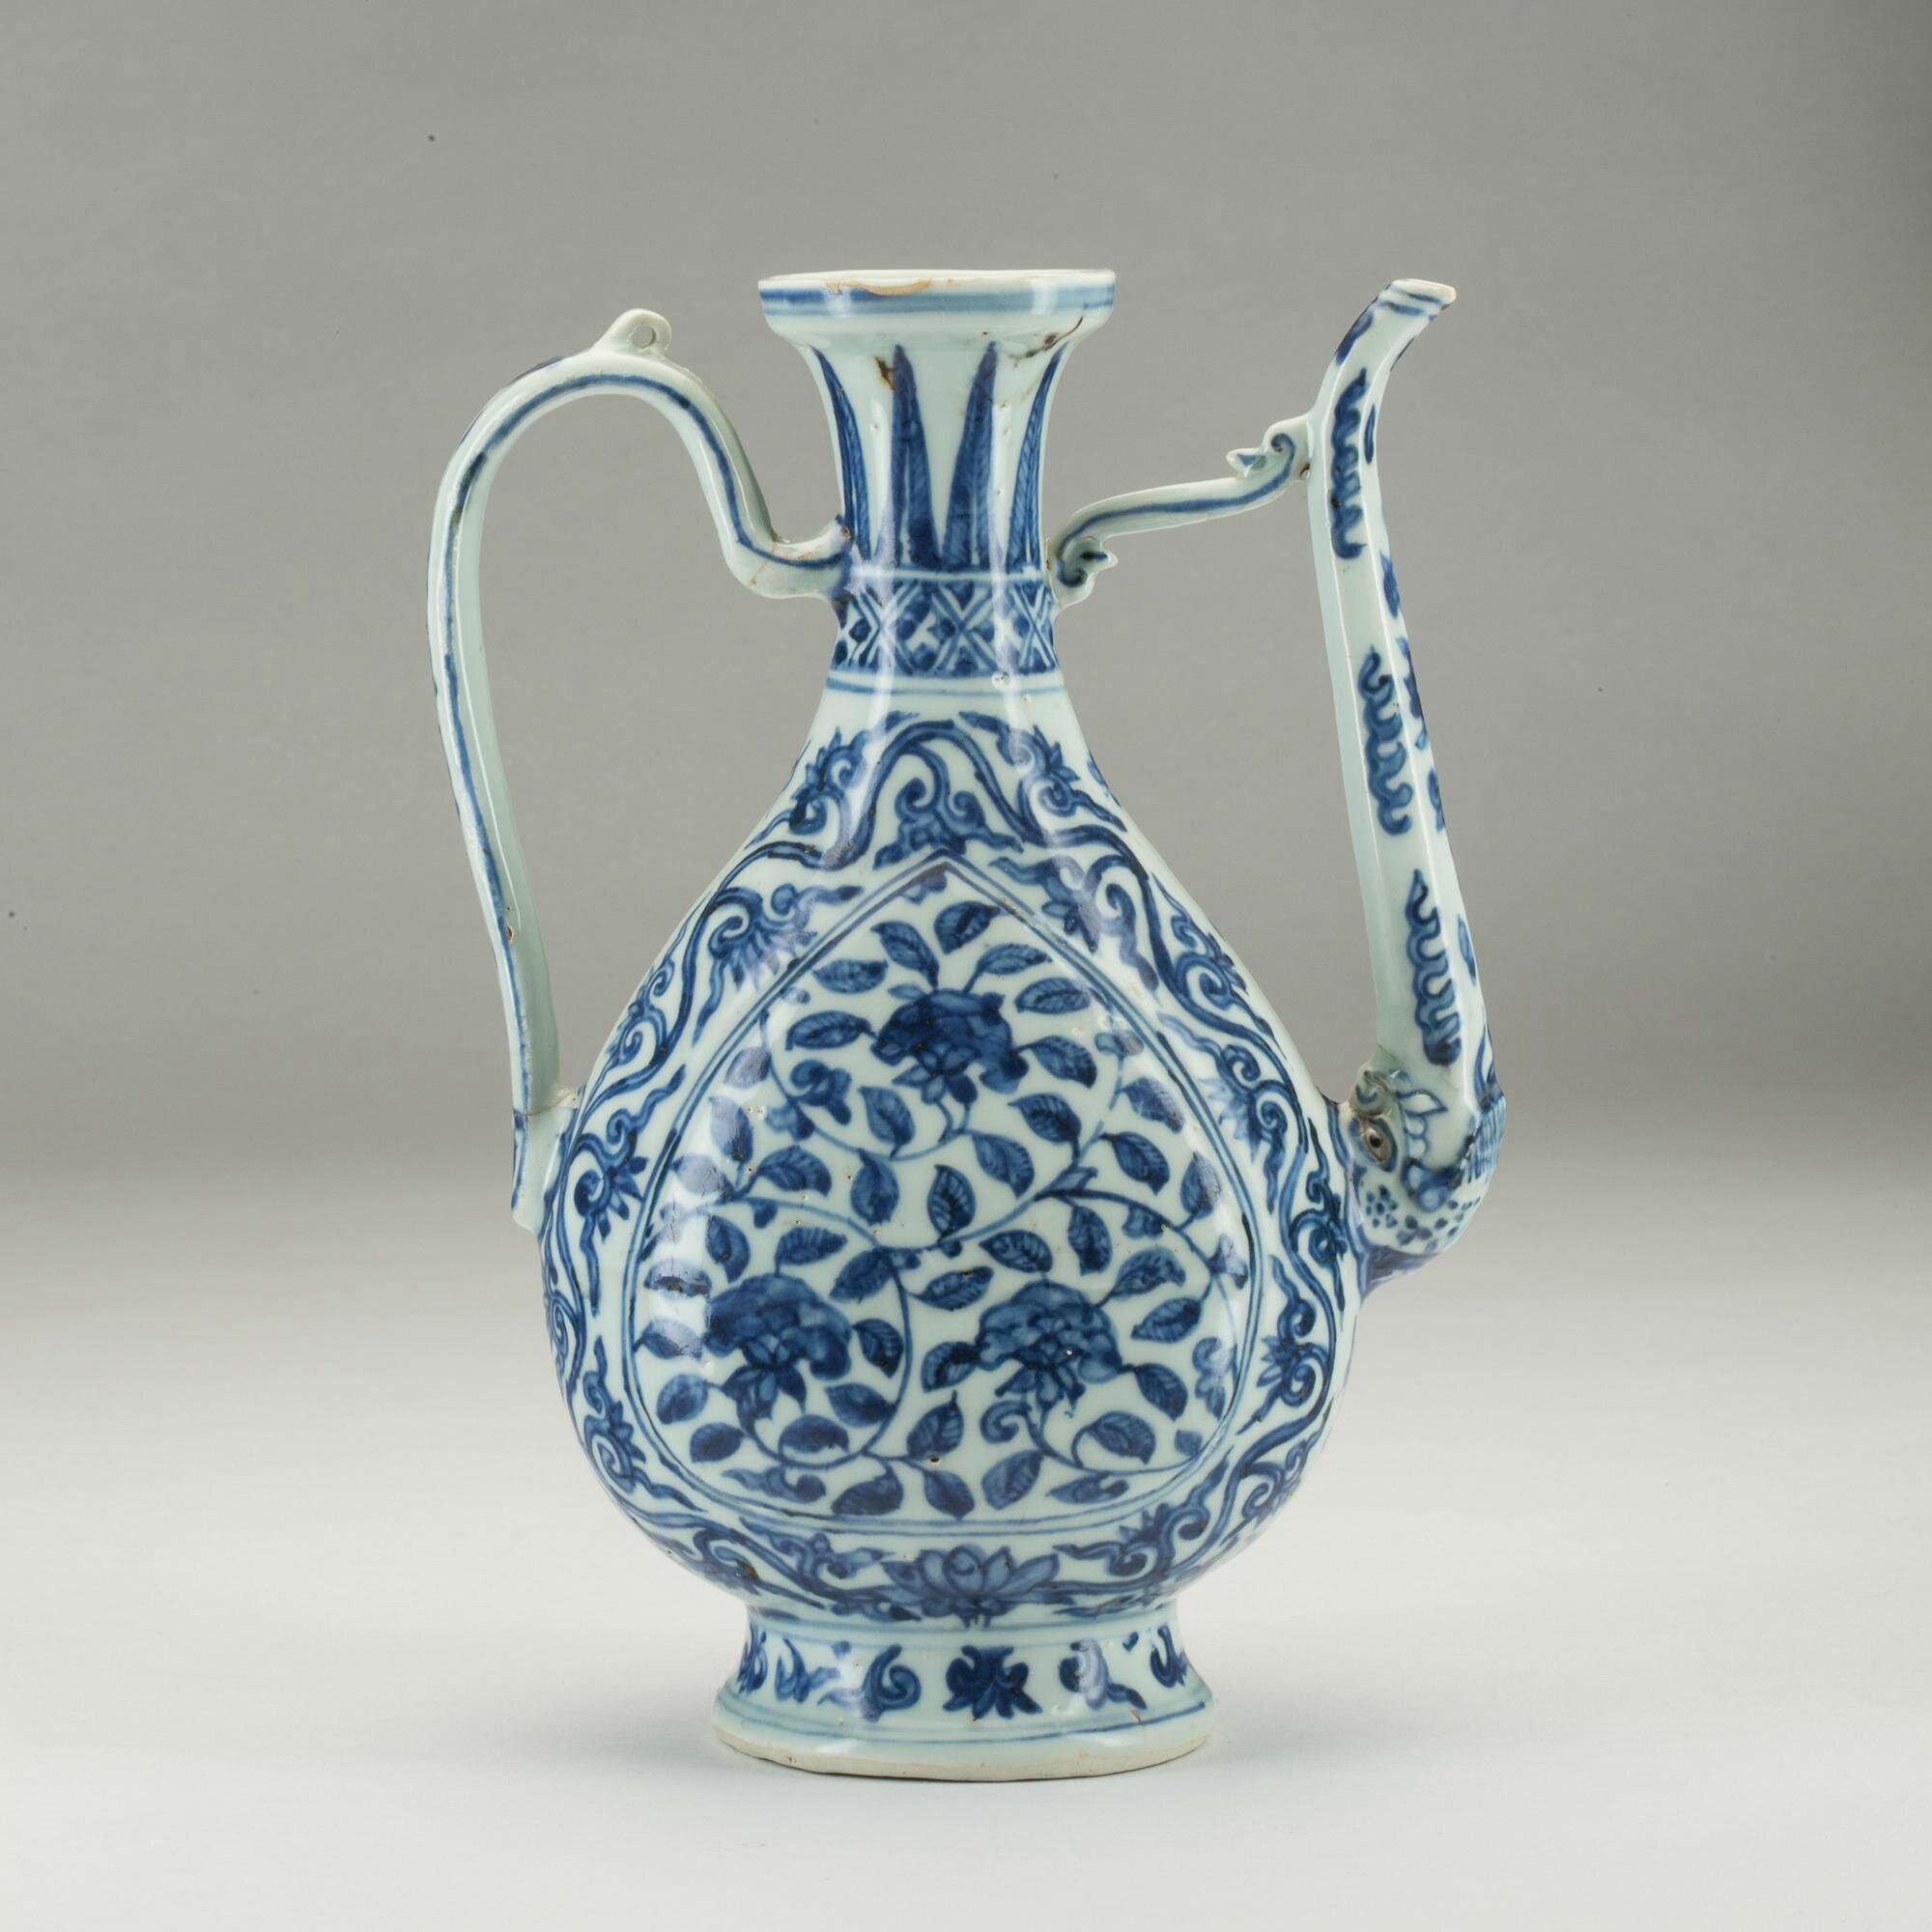 Blue and white ewer, China, Ming Dynasty, Jiajing Period with apocryphal four-character Xuande mark